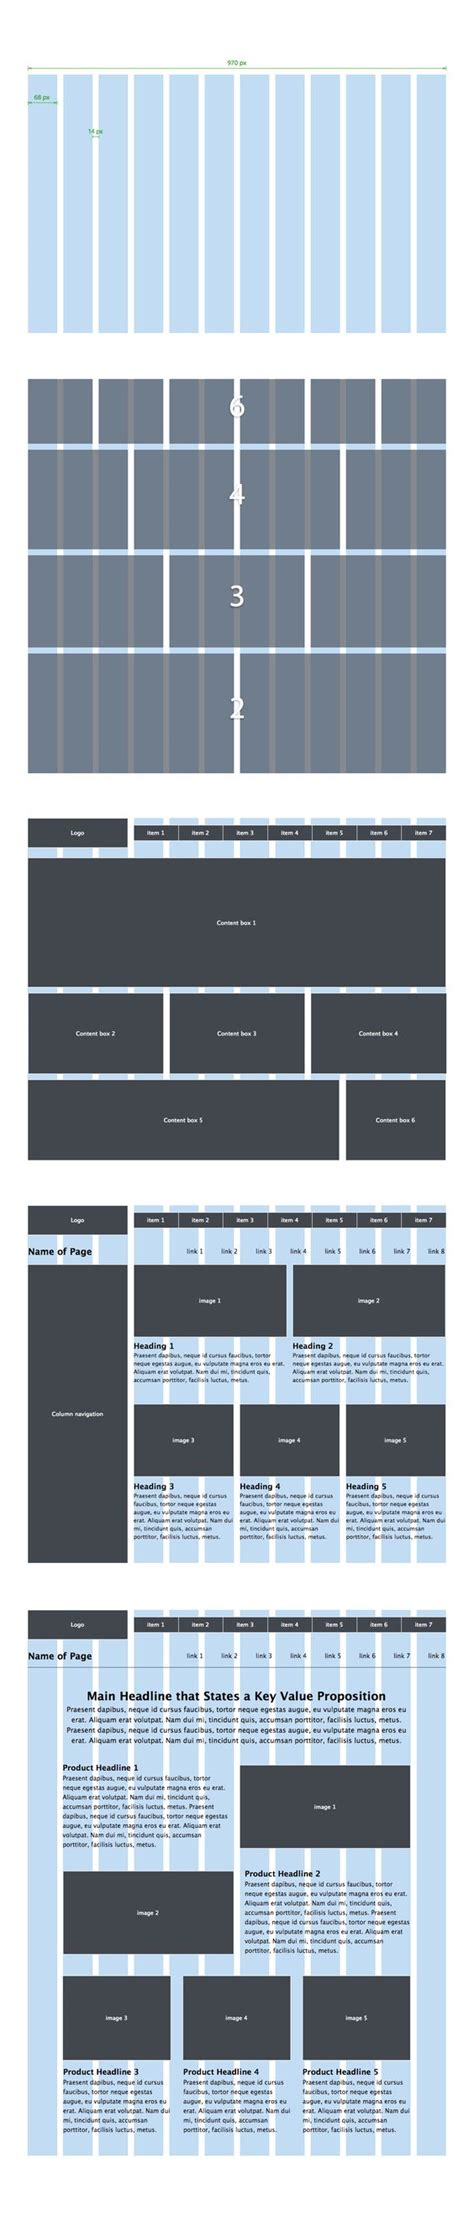 grid layout ux grid system wireframe and page layout on pinterest